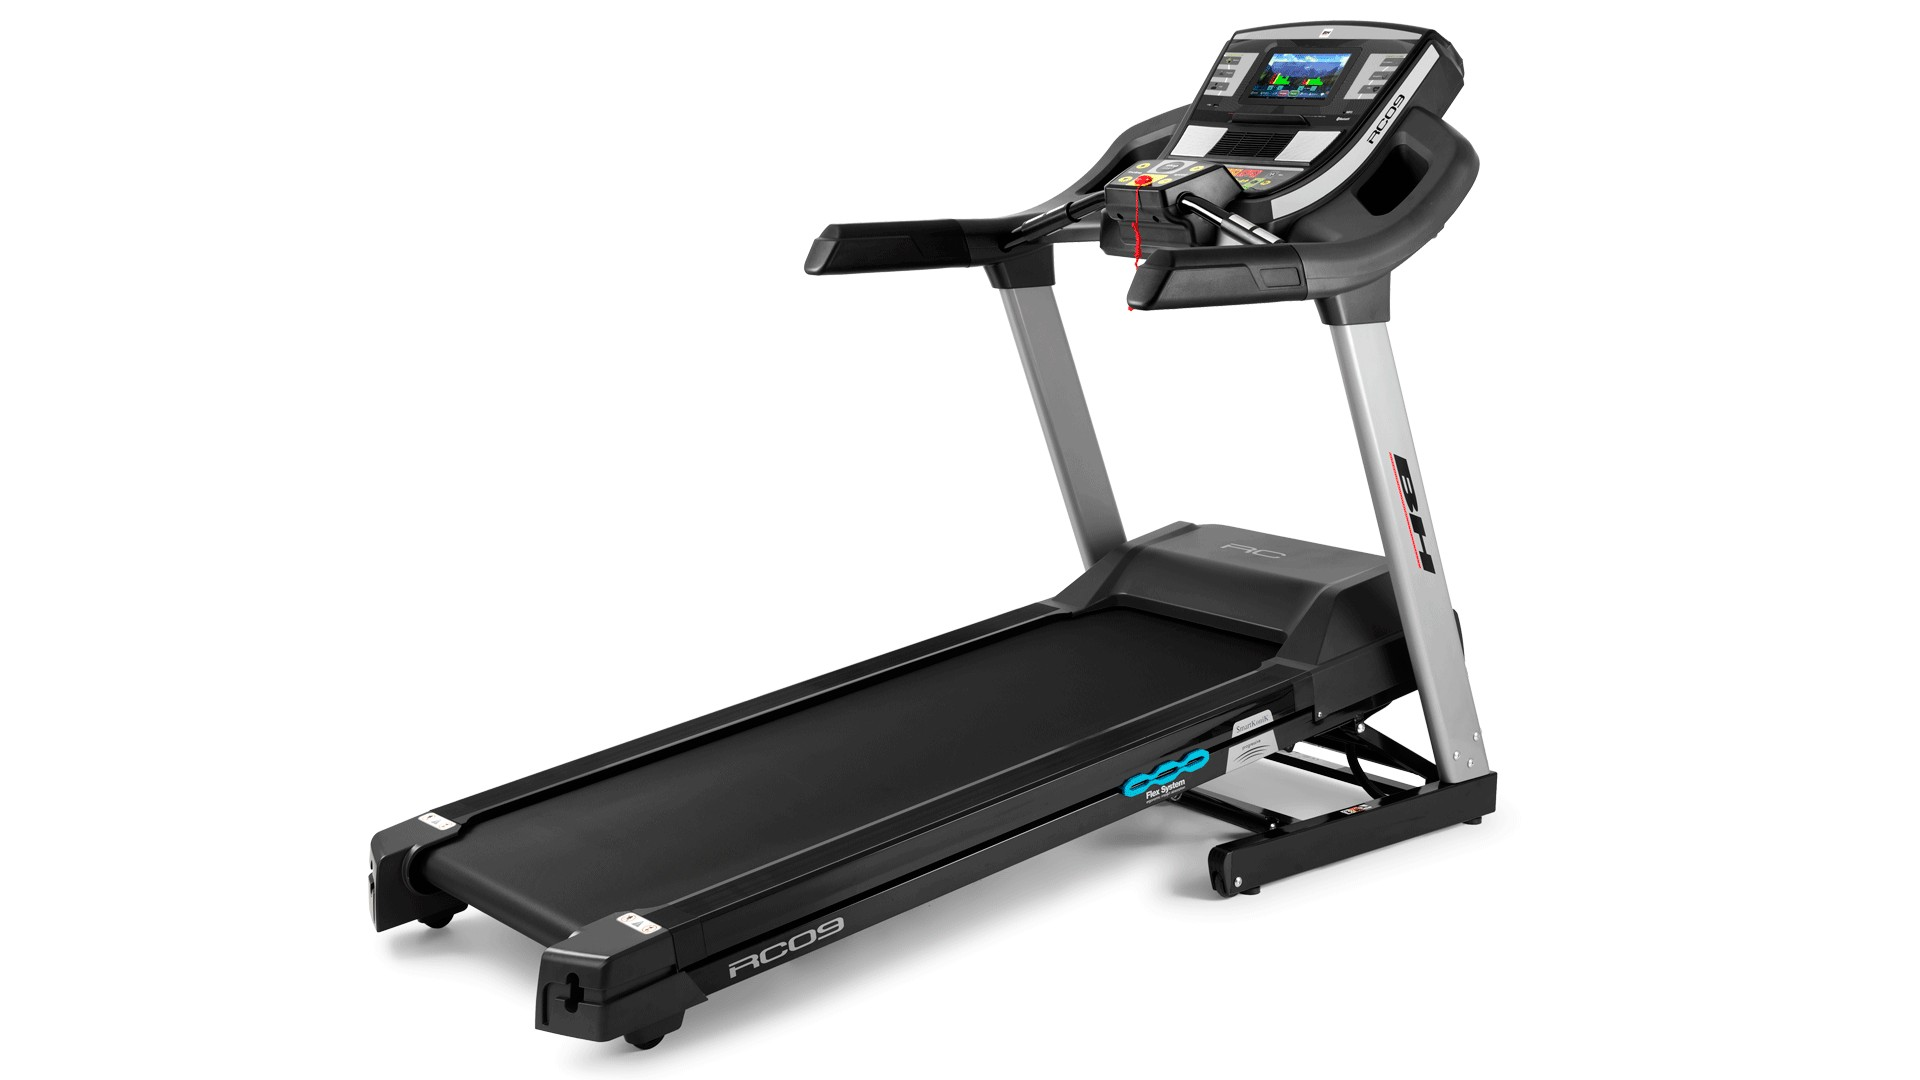 RC09 TFT Folding Treadmill